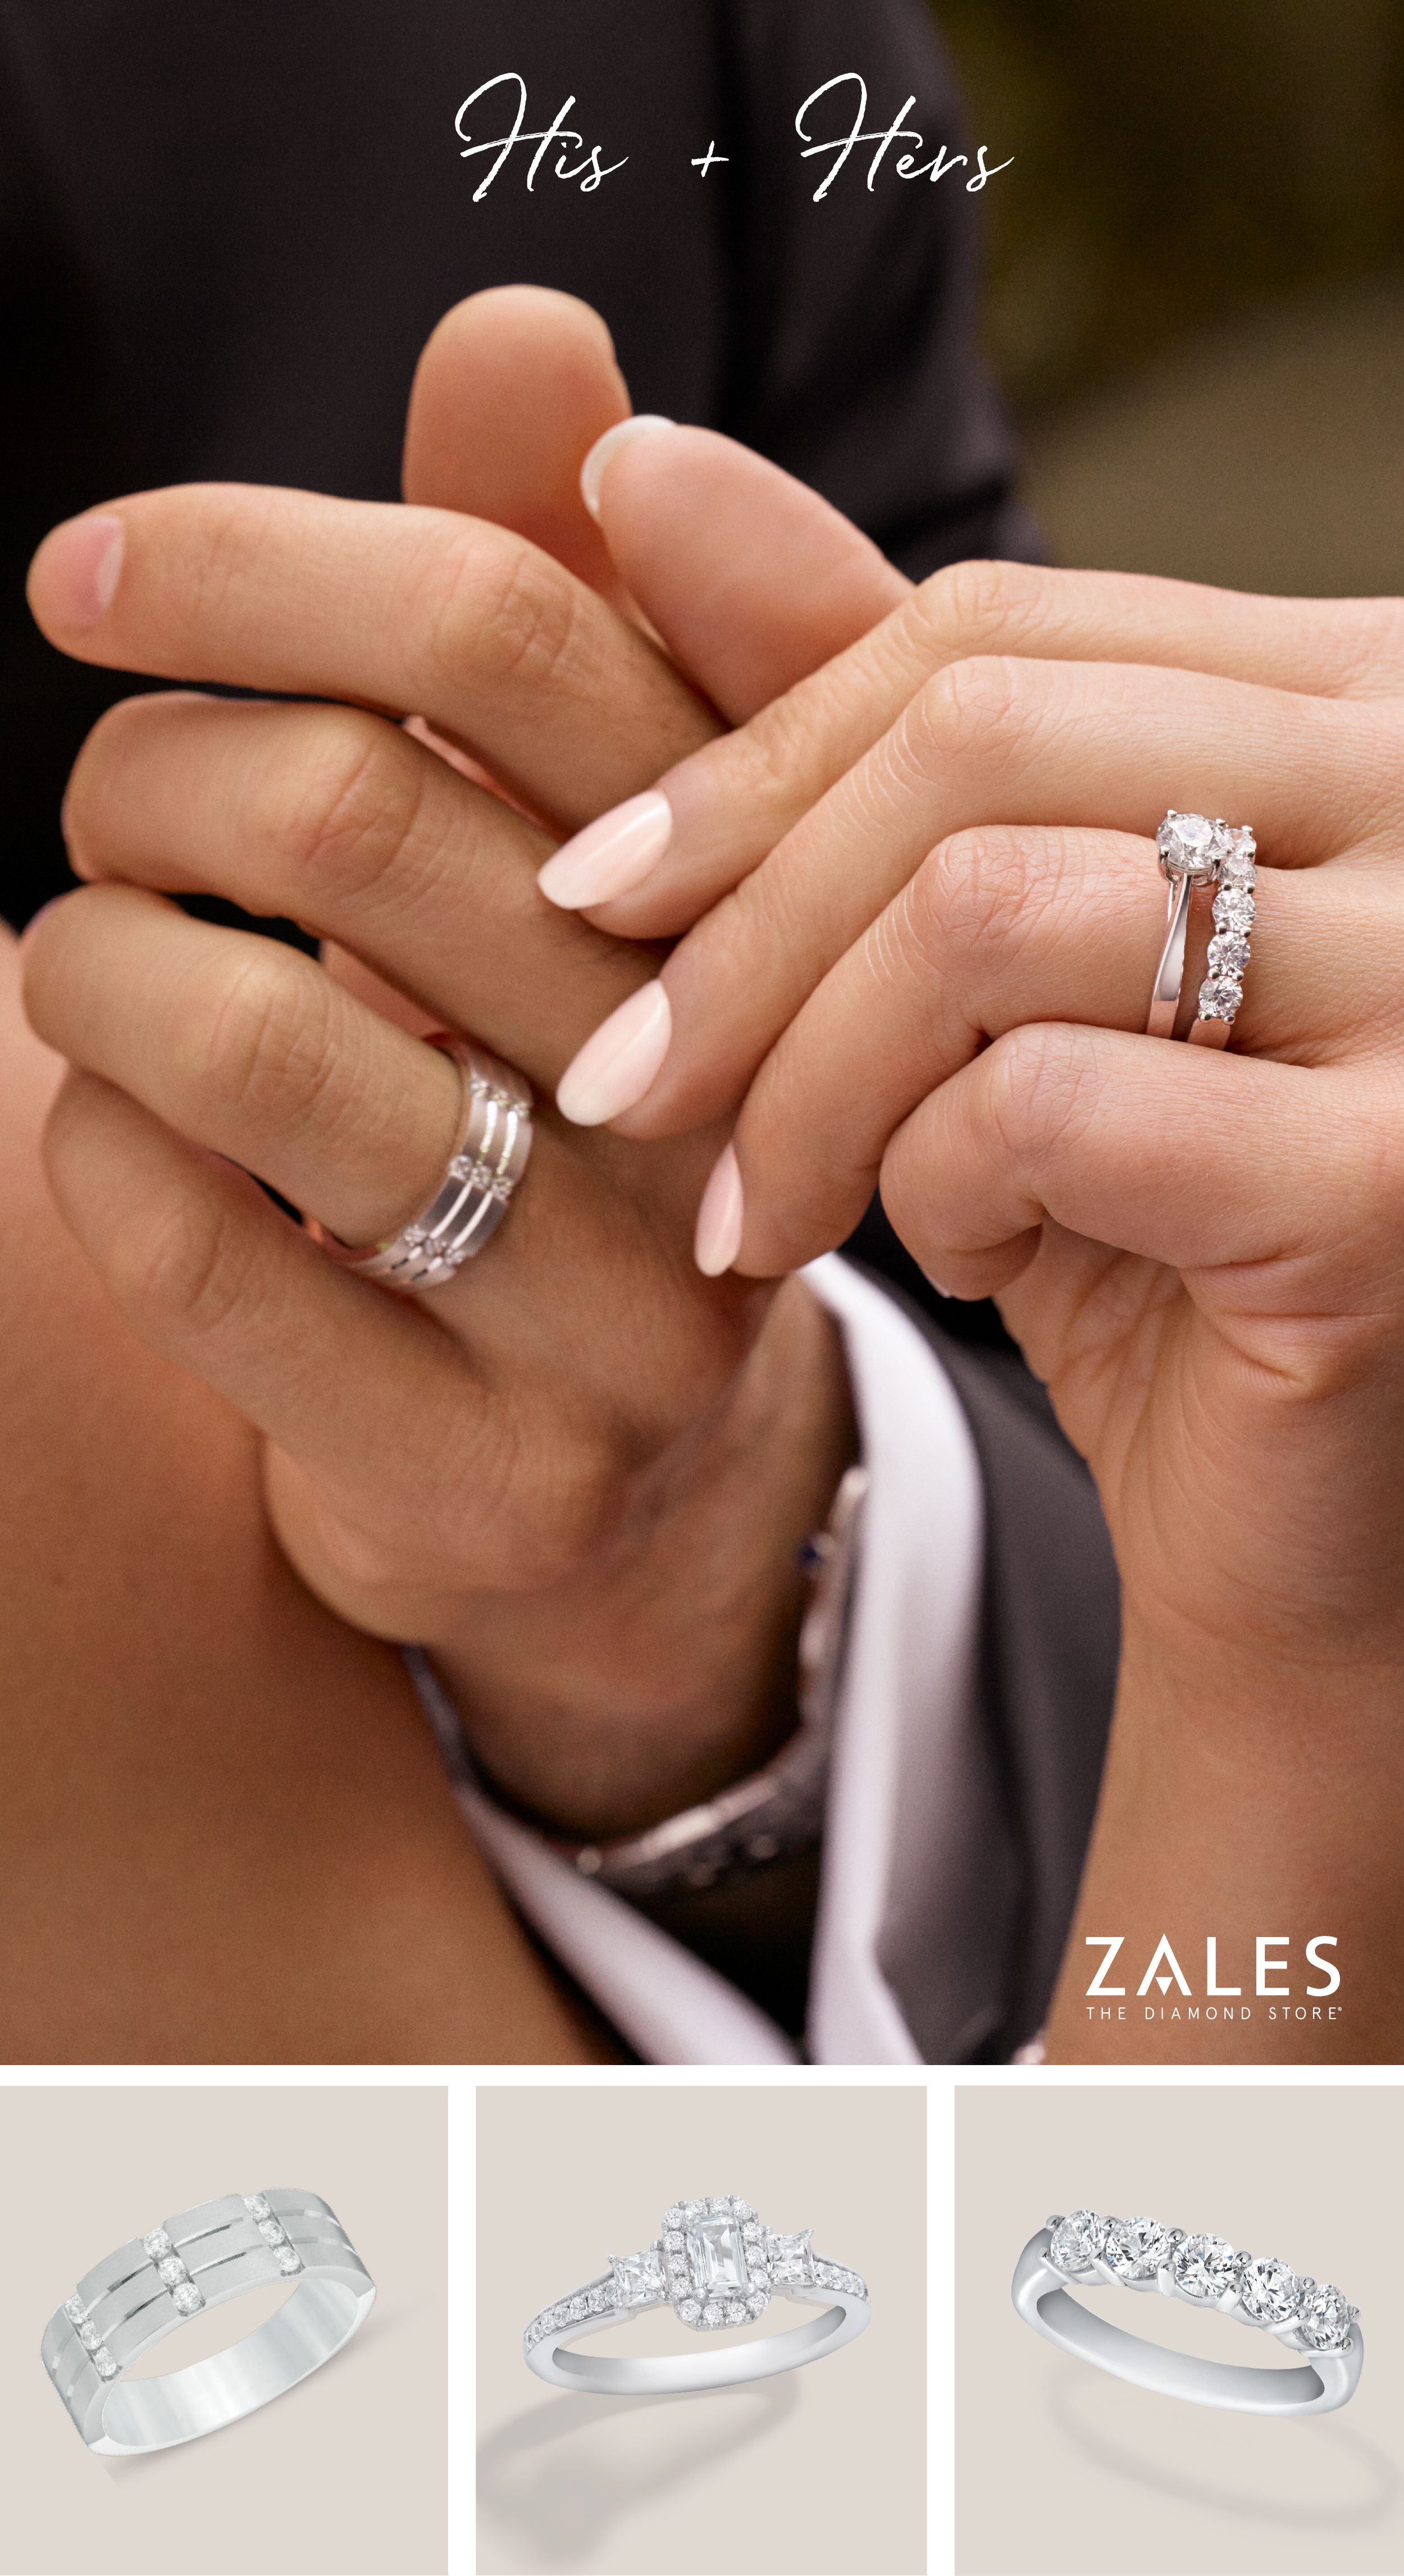 His & Hers. Shop now to find the perfect bridal rings.